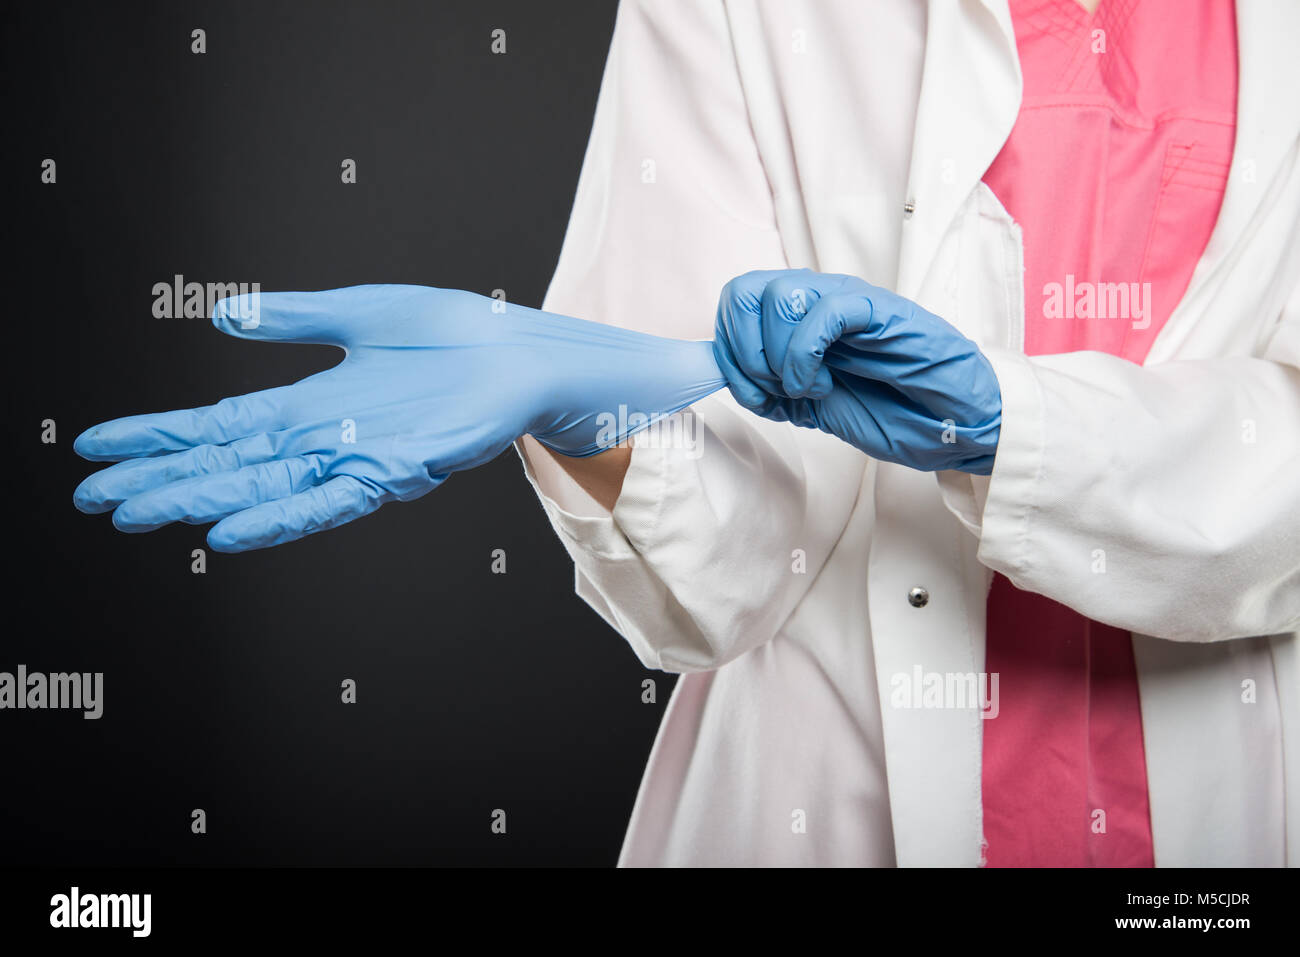 Close-up of doctor putting on her sterile gloves on black background - Stock Image